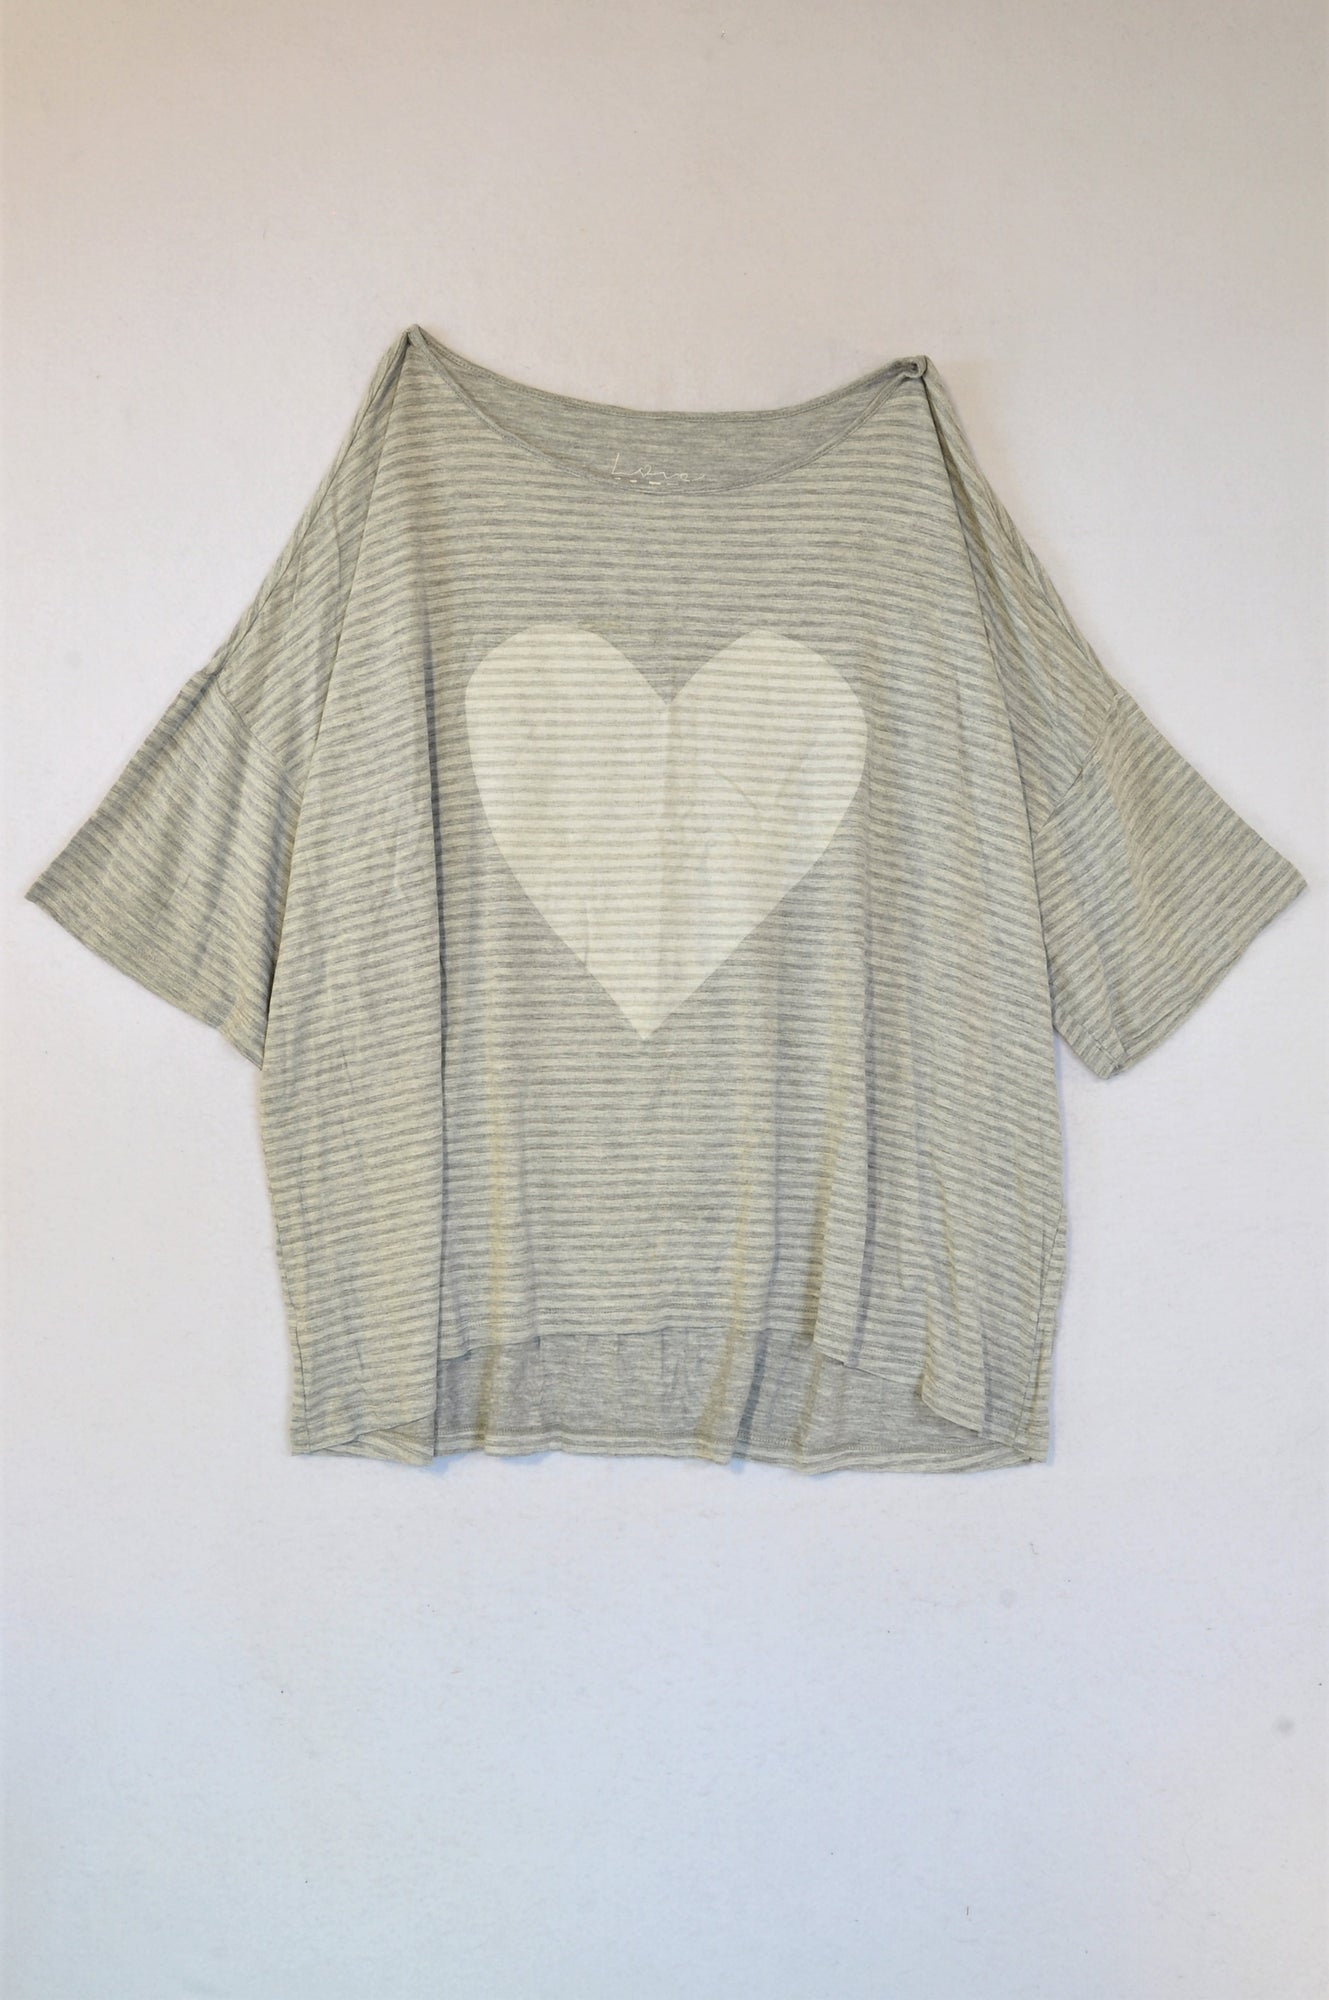 Woolworths Grey Striped Heart Sleep T-Shirt Women Size XL